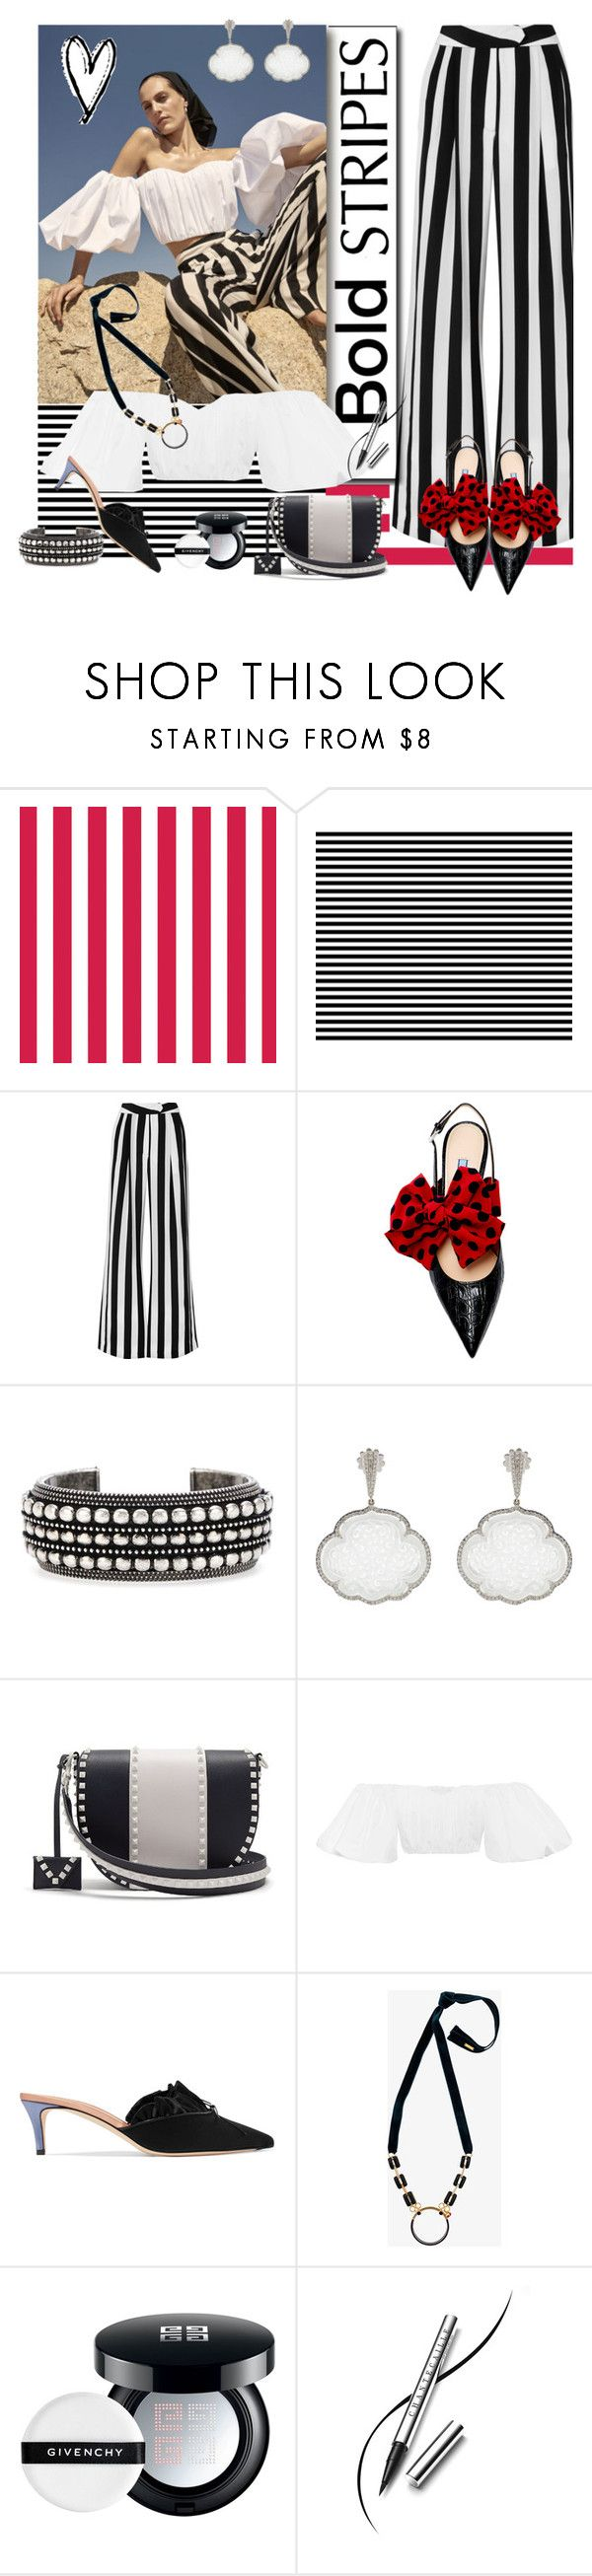 """""""Bold Stripes"""" by sylandrya ❤ liked on Polyvore featuring Michelle Mason, Yves Saint Laurent, Inbar, Valentino, E L L E R Y, Marni, Givenchy and Chantecaille"""